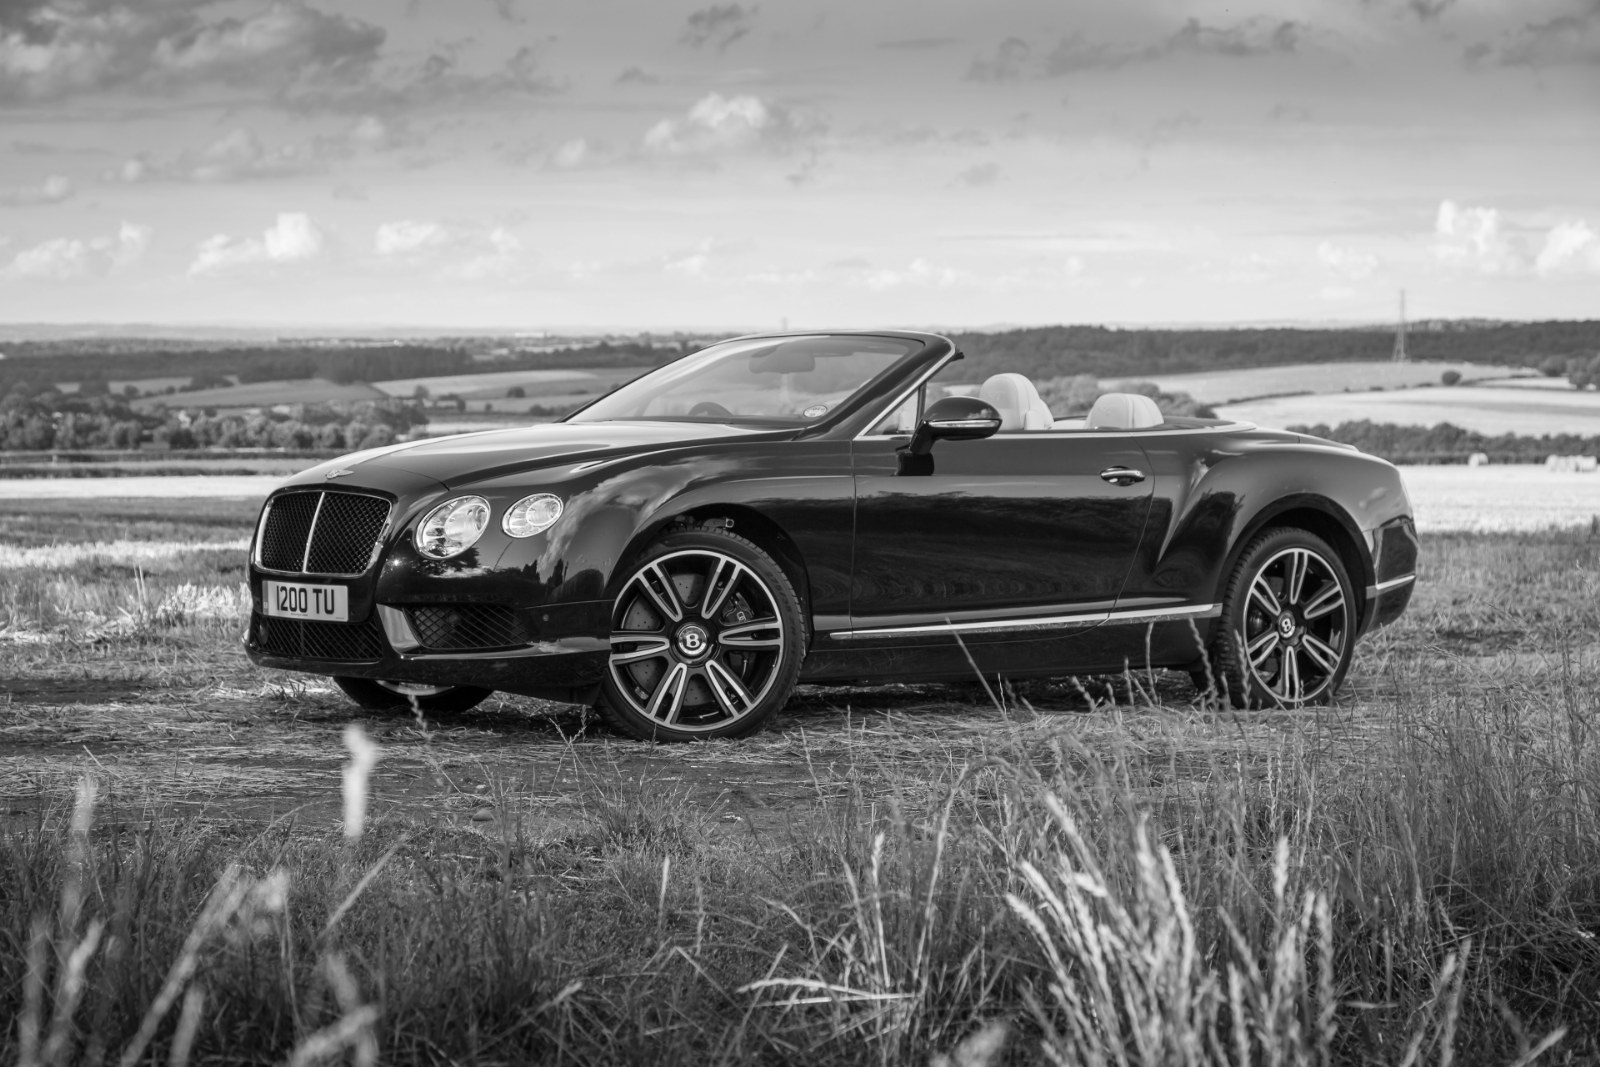 Bentley Continental GT V8 Convertible 7 Day Diary